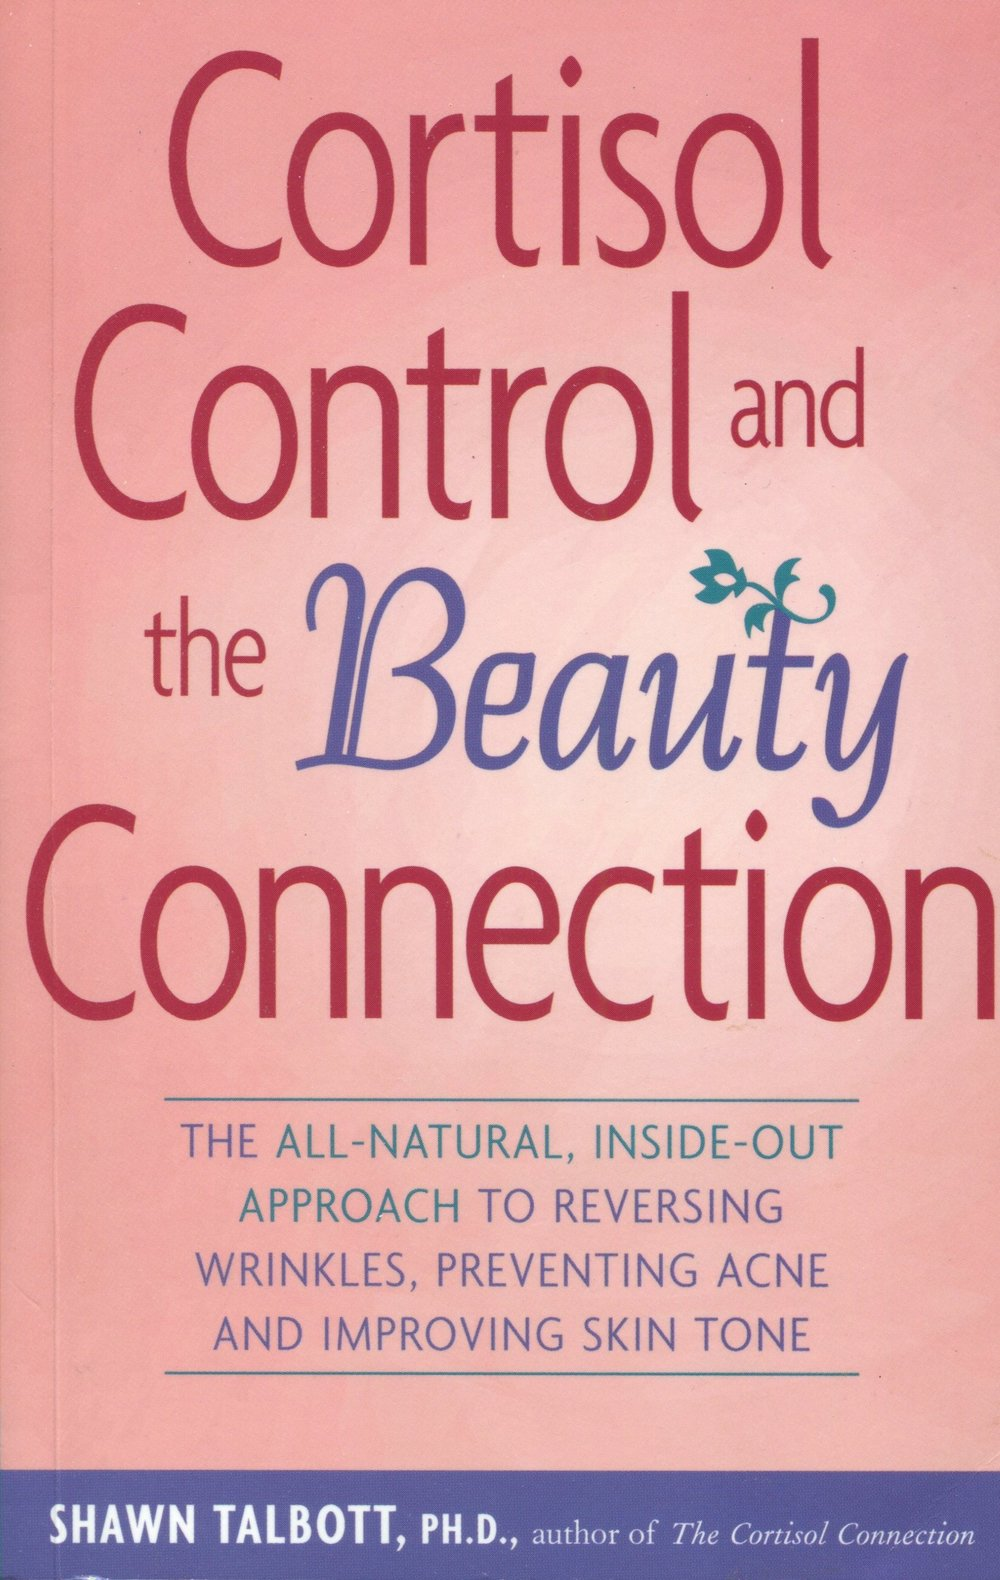 Cortisol Control & the Beauty Connection, front cover.jpg